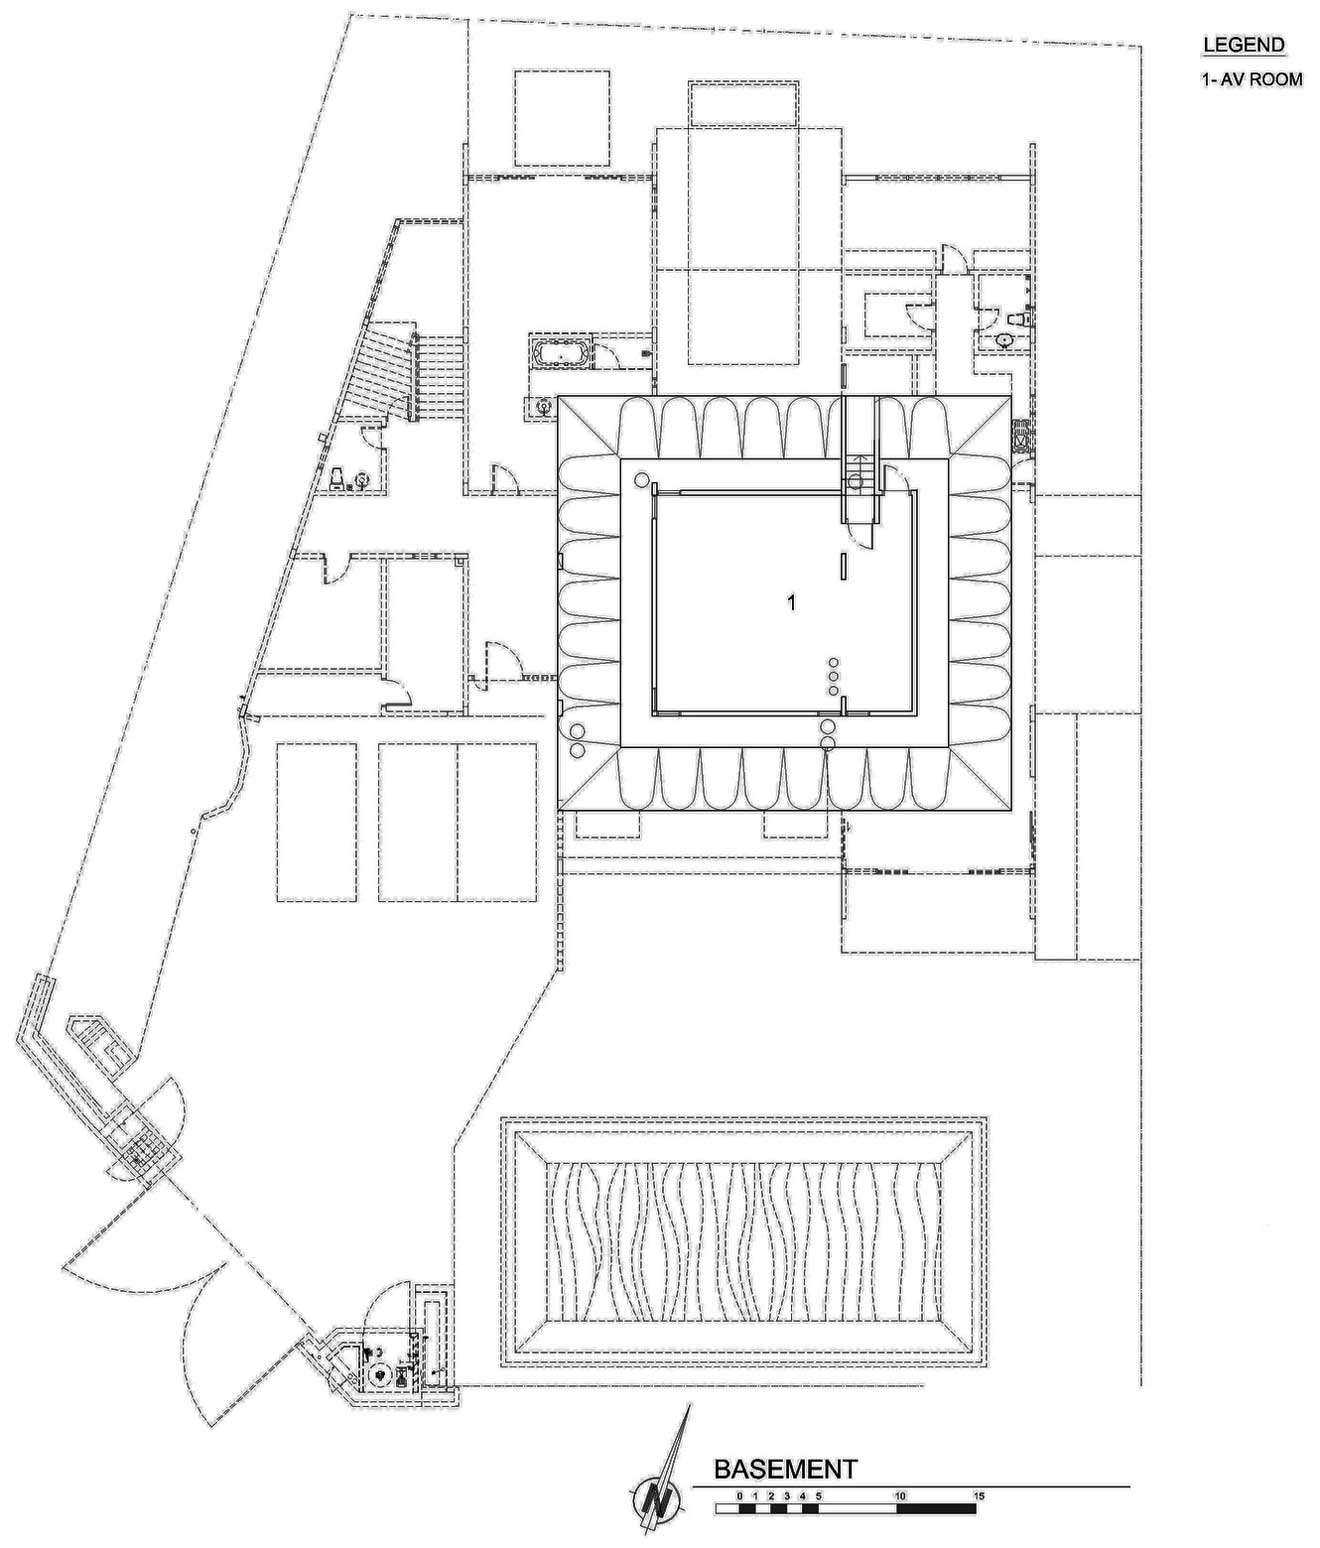 Basement Floor Plan, S11 House in Selangor, Malaysia by ArchiCentre